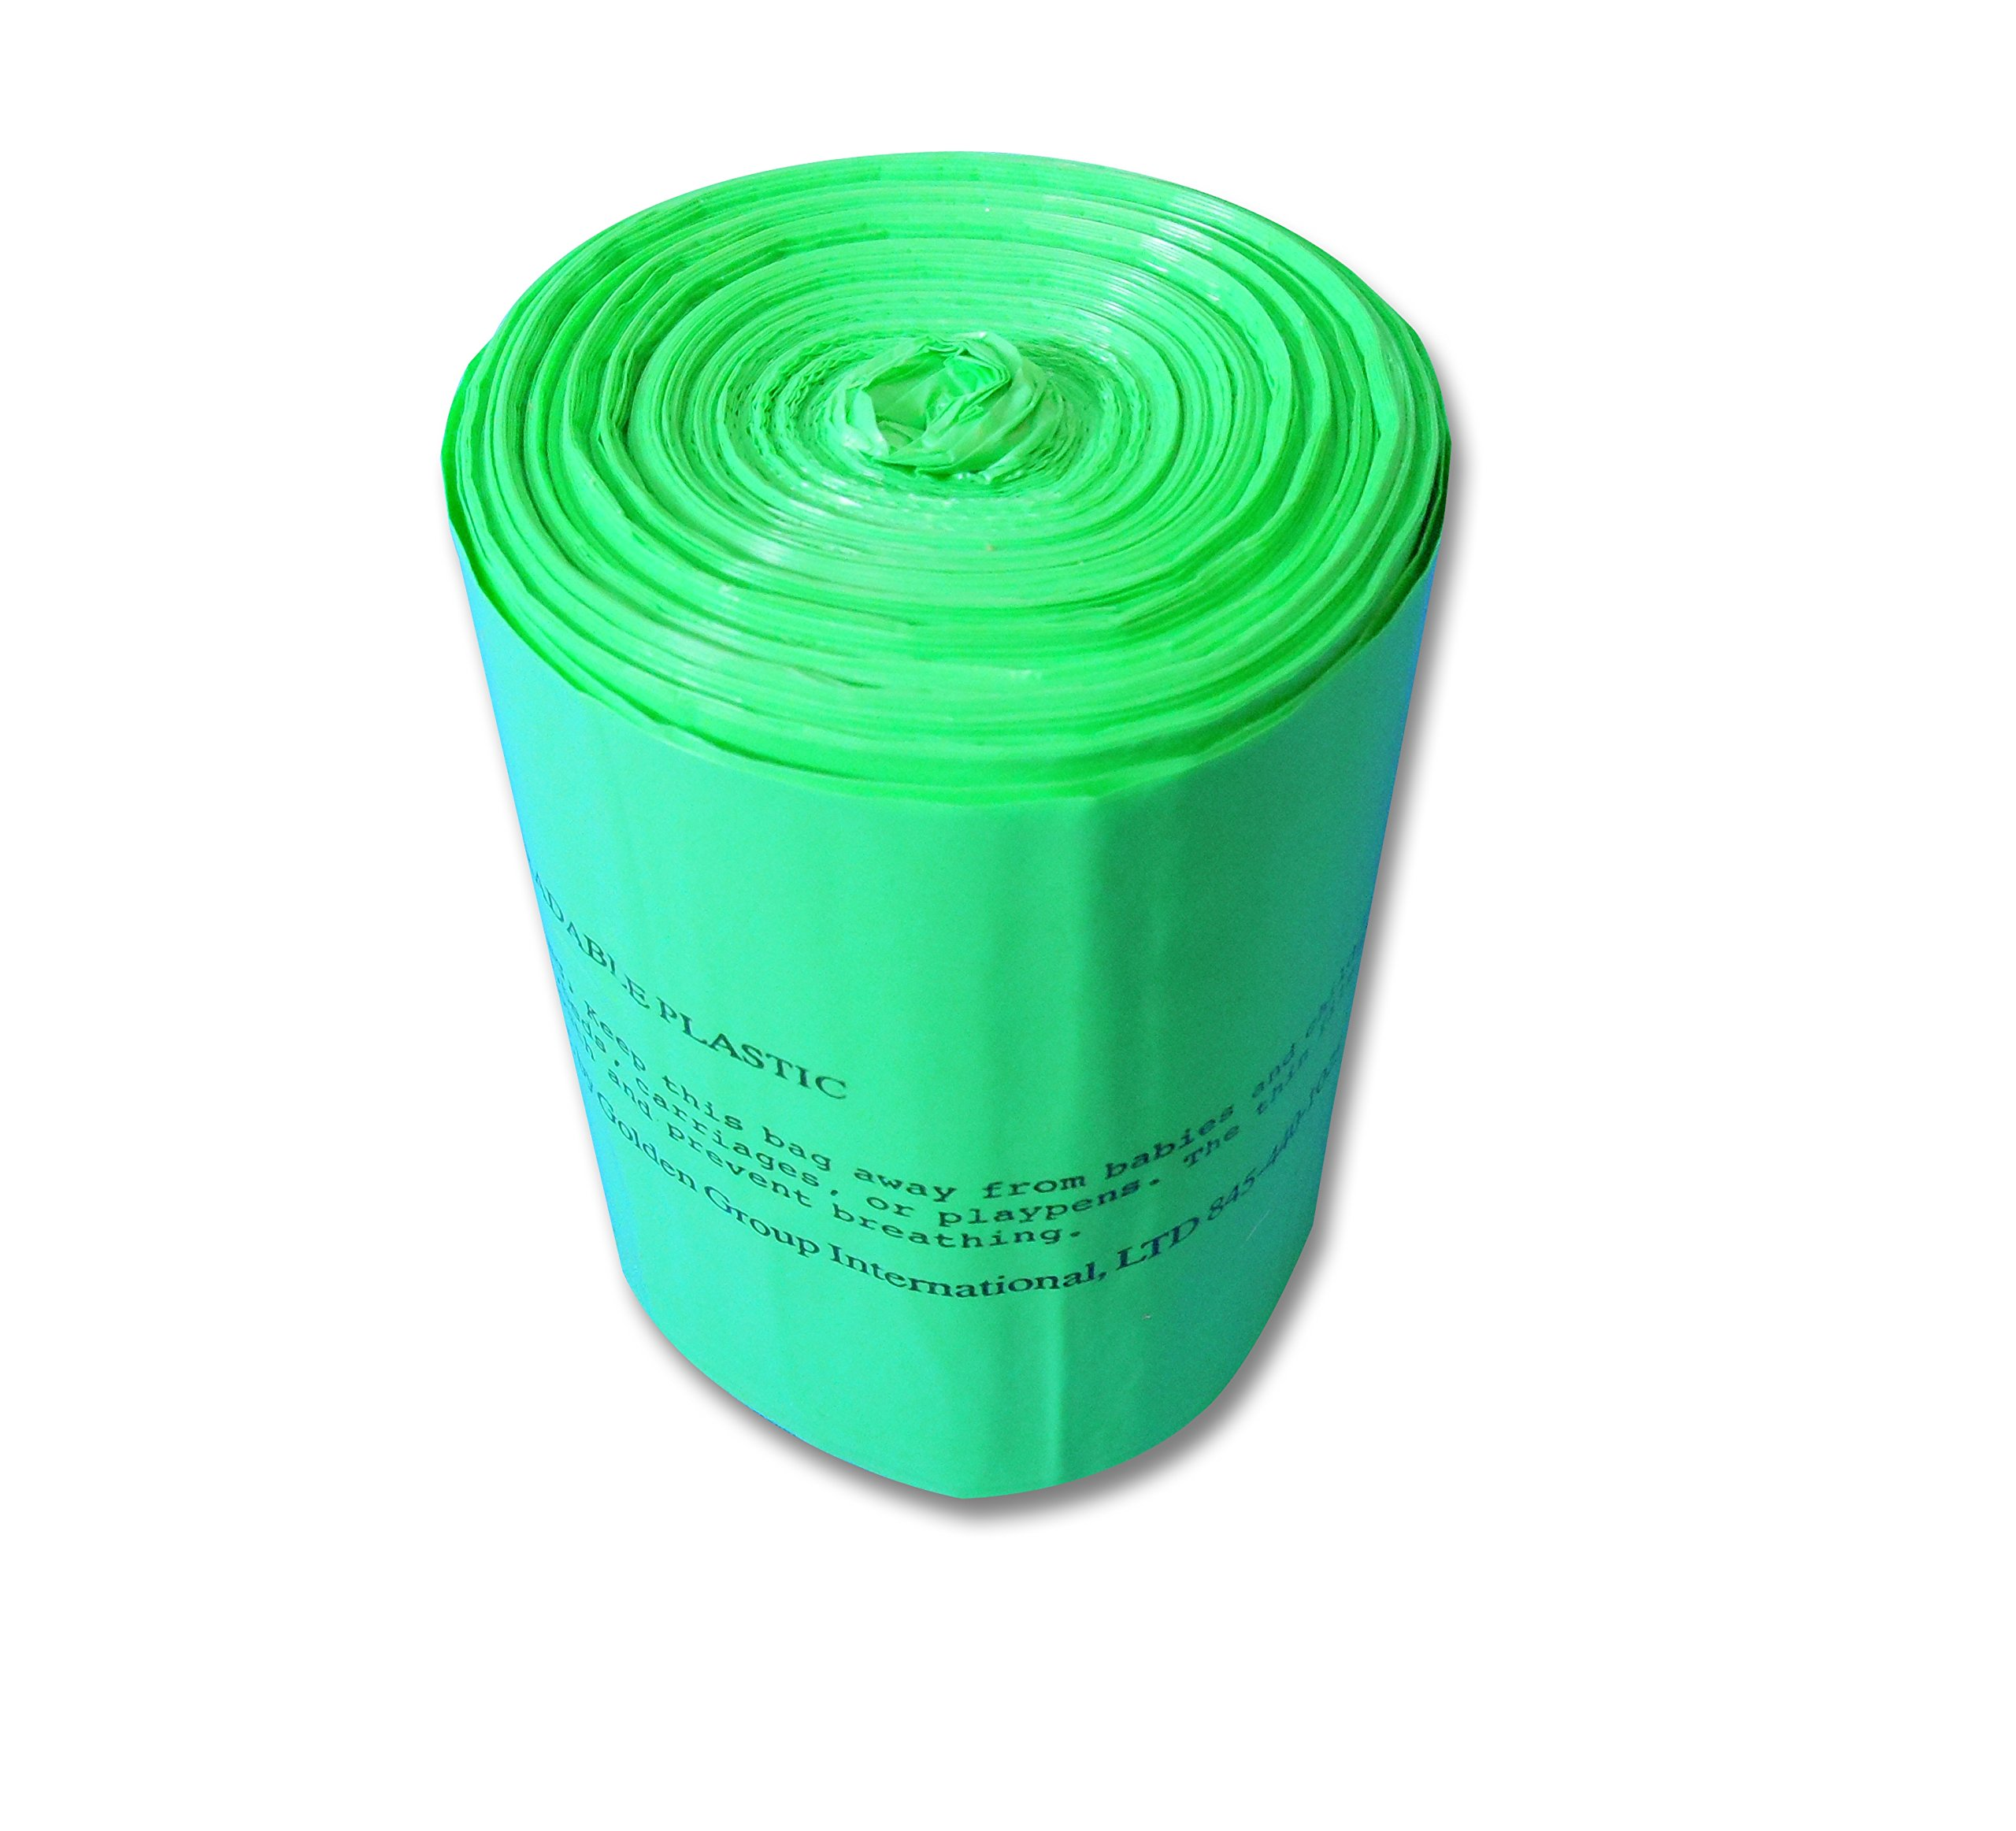 S.A.C. TD9024-24 Sanitary Napkin Receptacle Liner, Plastic, 5 gal Capacity, Green (Pack of 24)